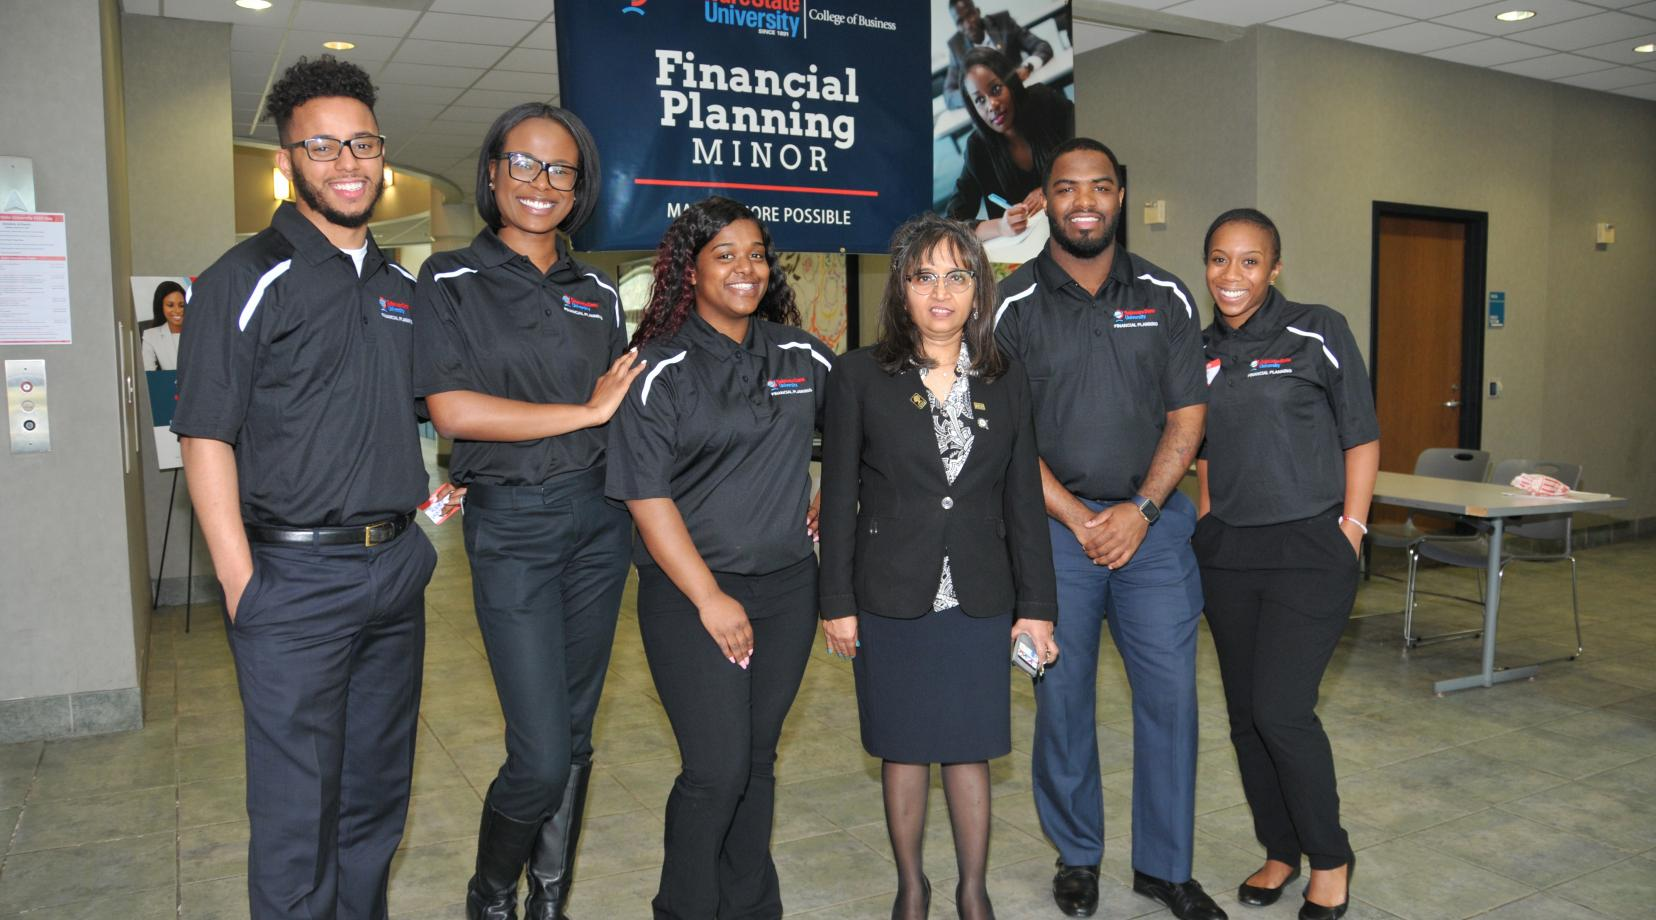 (L-r) Tabias Slaughter, Raven Wainwright, Whitney Douglas, Dr. Nandita Das, Reginald Adams and J'Lynn Drennan represent the founding instructor and students of the new Financial Planning minor.